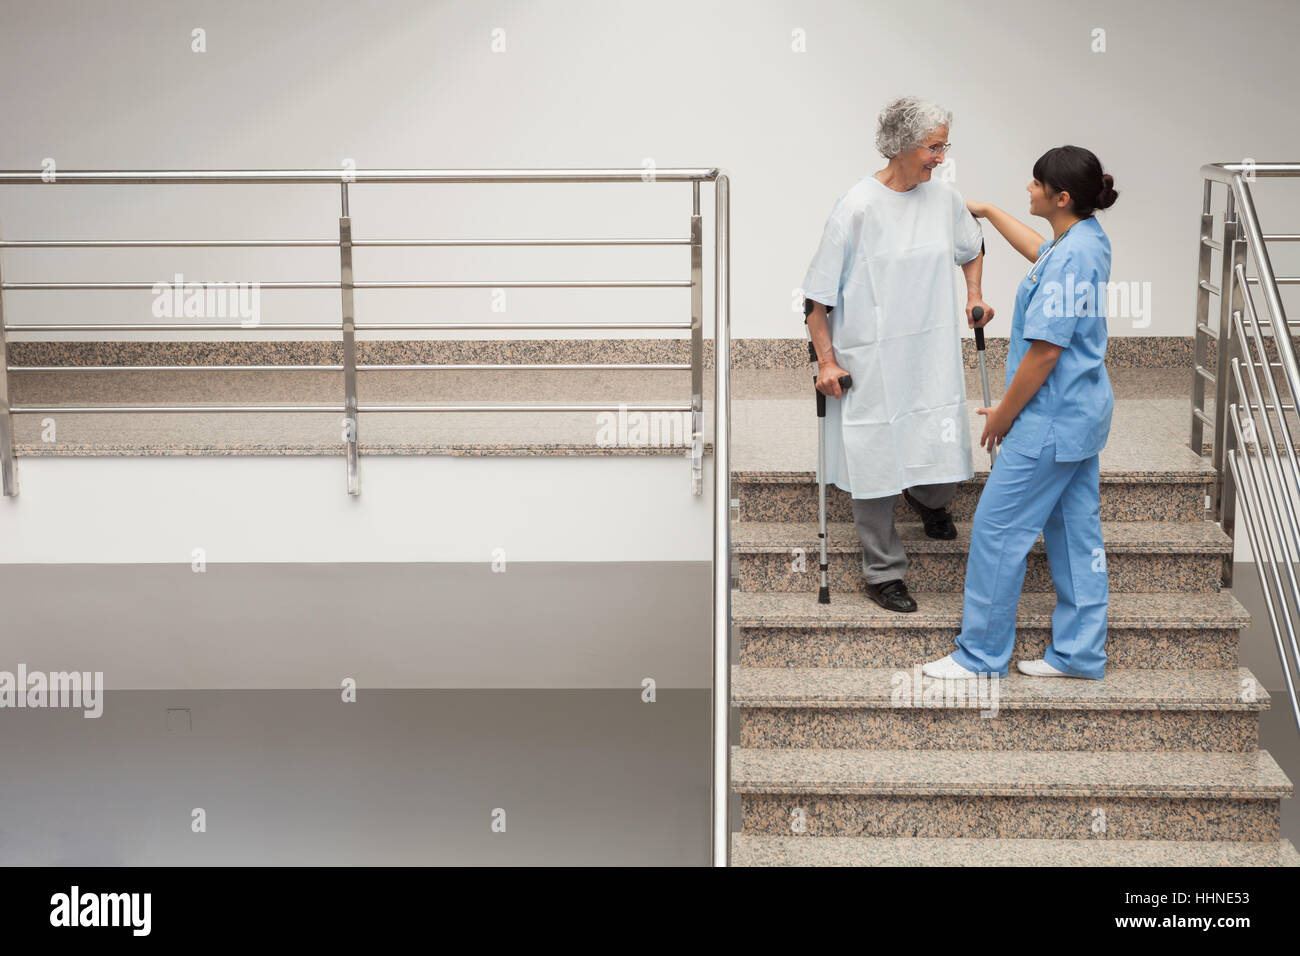 Nurse Helping Elderly Lady On Crutches Get Down Hospital Stairs